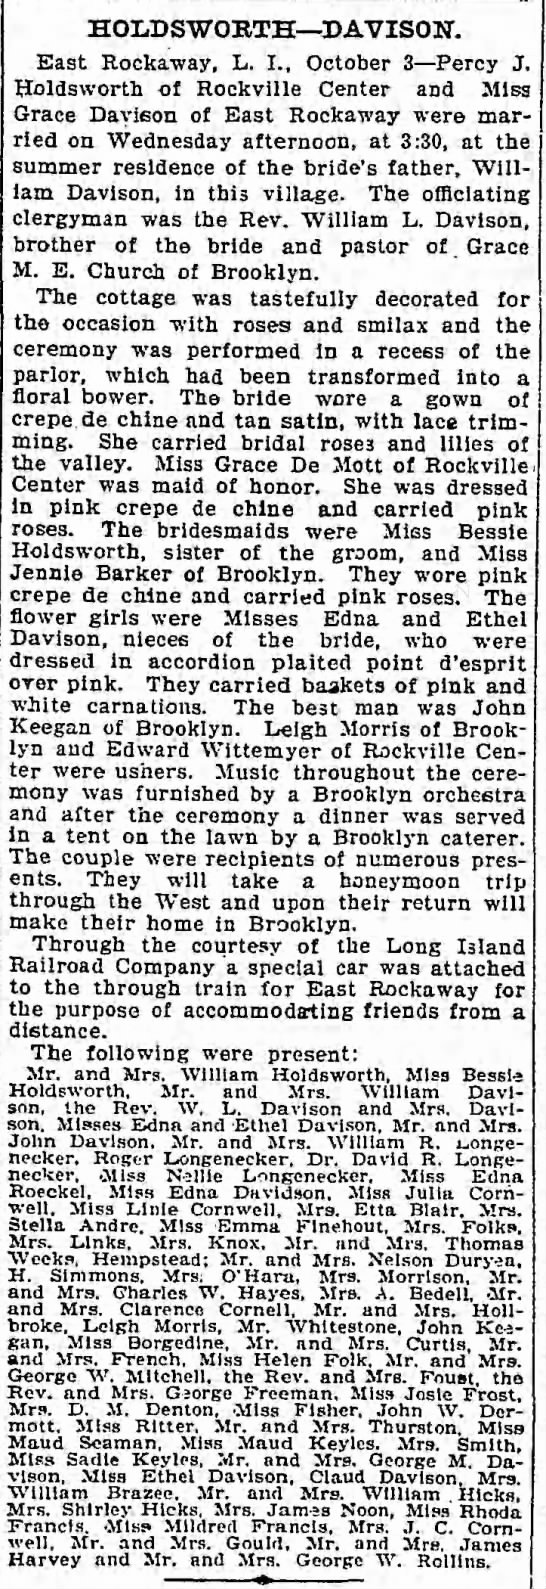 The Brooklyn Daily Eagel, Oct 3, 1902. Page 8 -